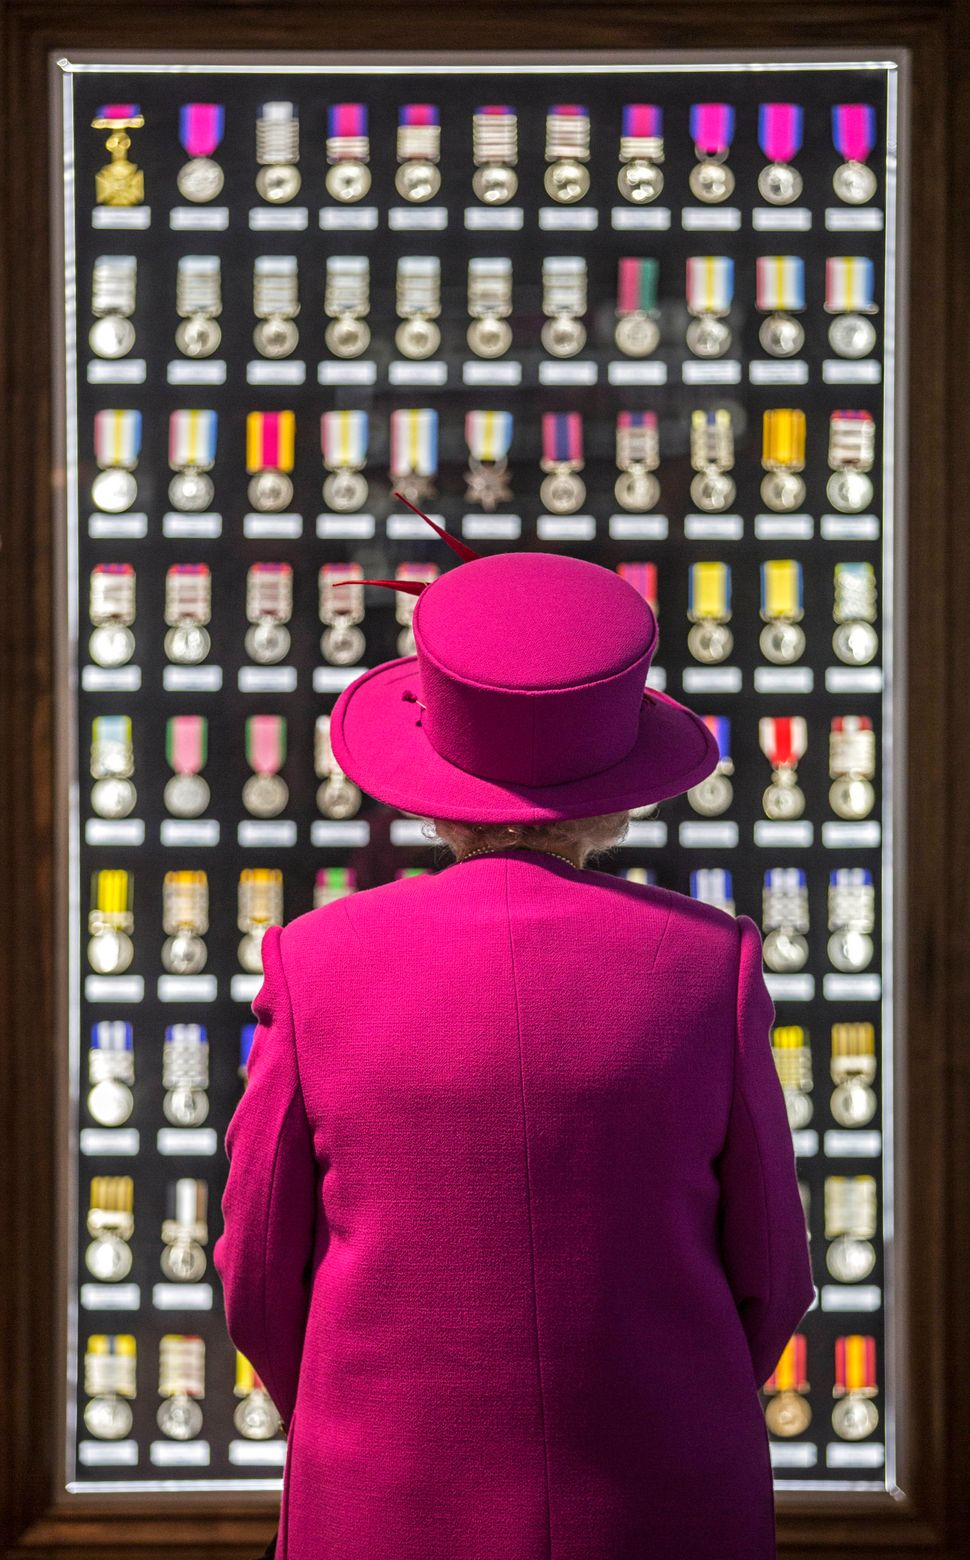 Queen Elizabeth II looks at a cabinet of medals during a Nov. 5 visit to the Ministry of Defense's Joint Casualty and Compass